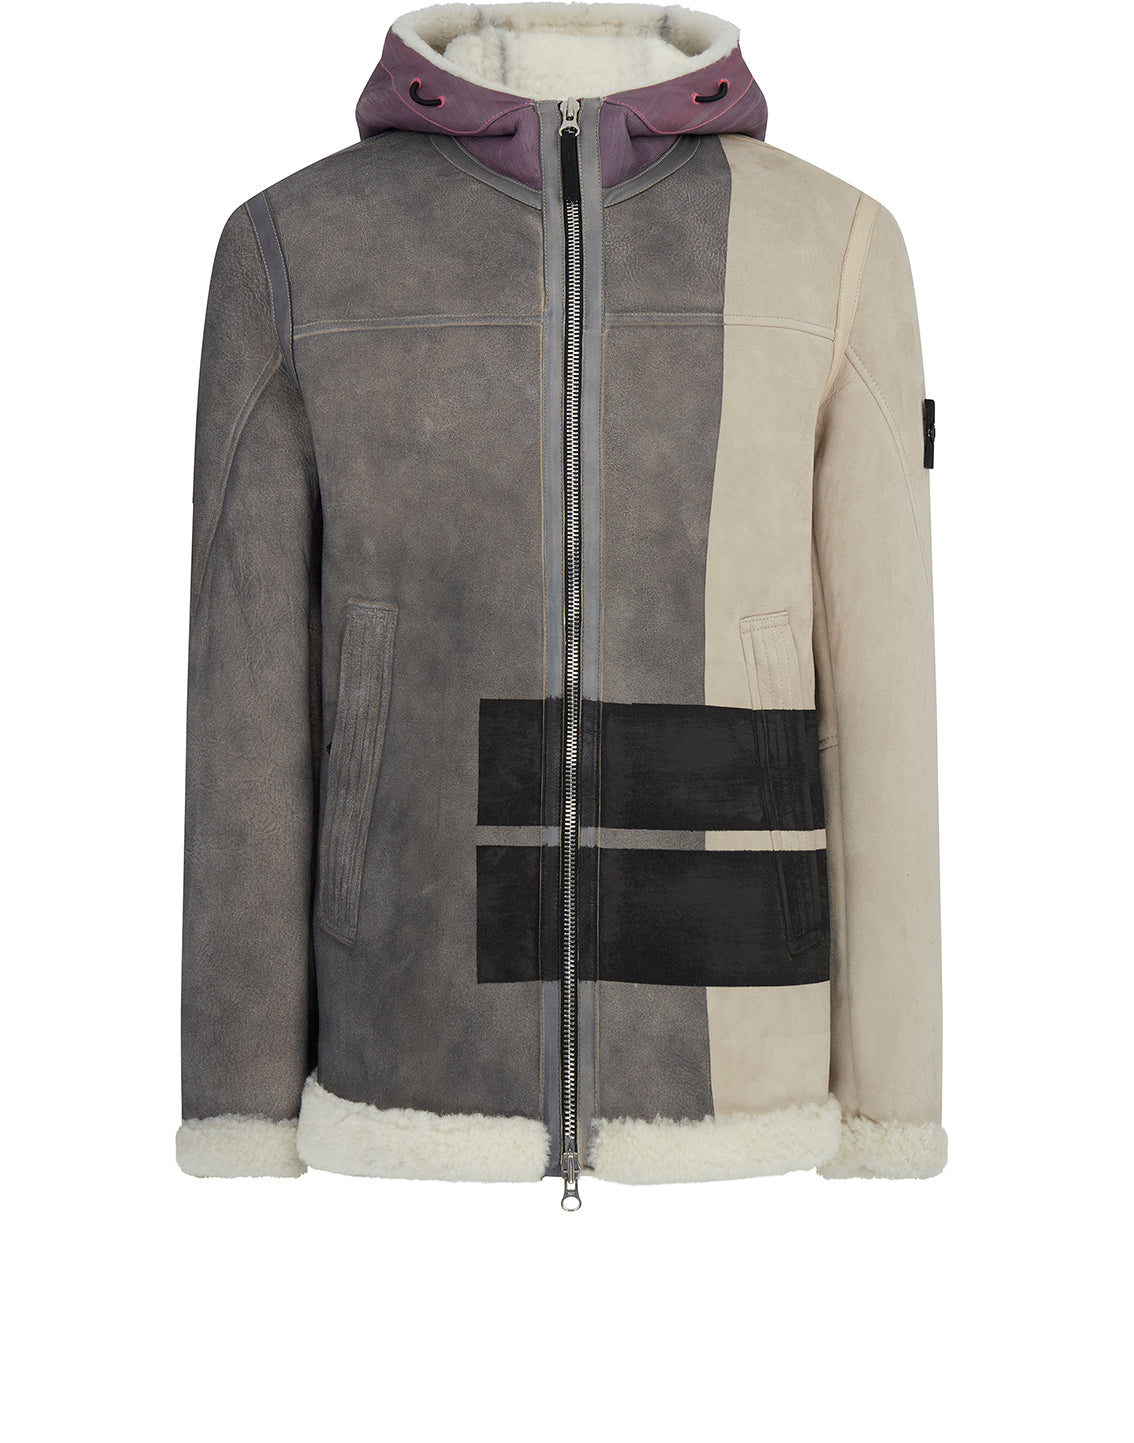 00195 Hand Sprayed Over Printed Sheepskin Hooded Jacket in Dove Grey